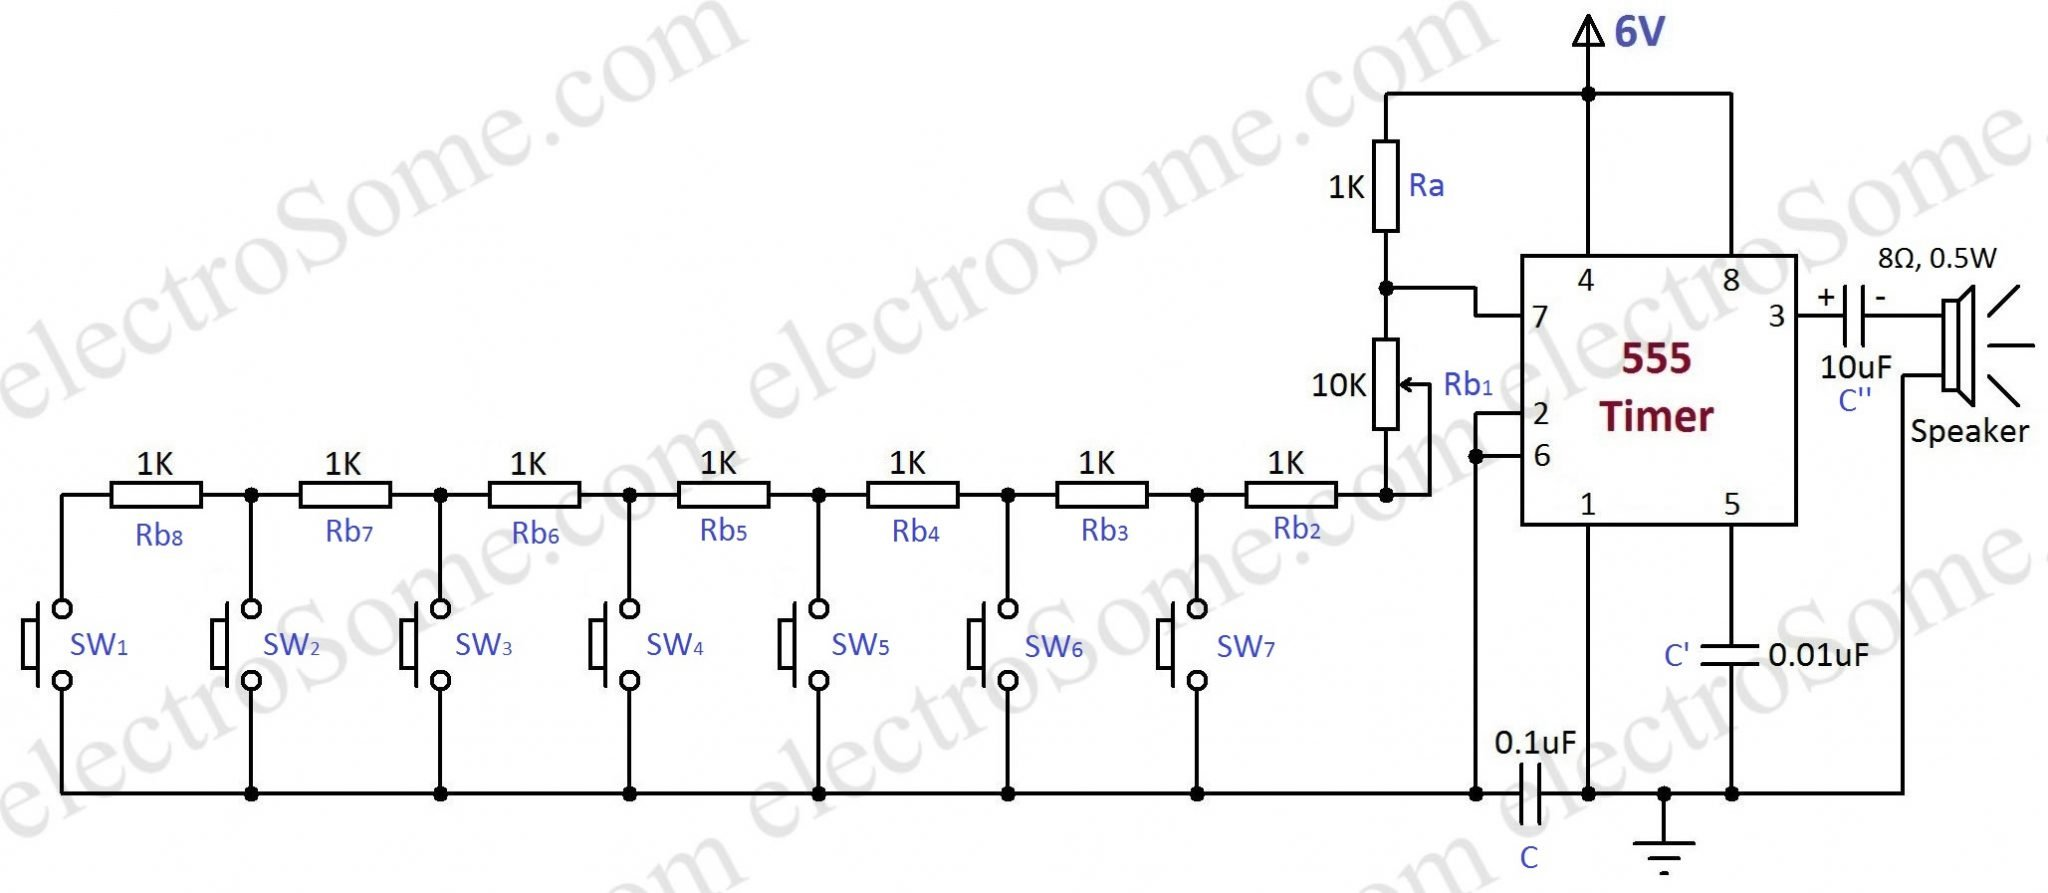 Simple Electronic Piano Using 555 Timer Toy Organ Circuit August 2013 Diagrams Schematics Diagram